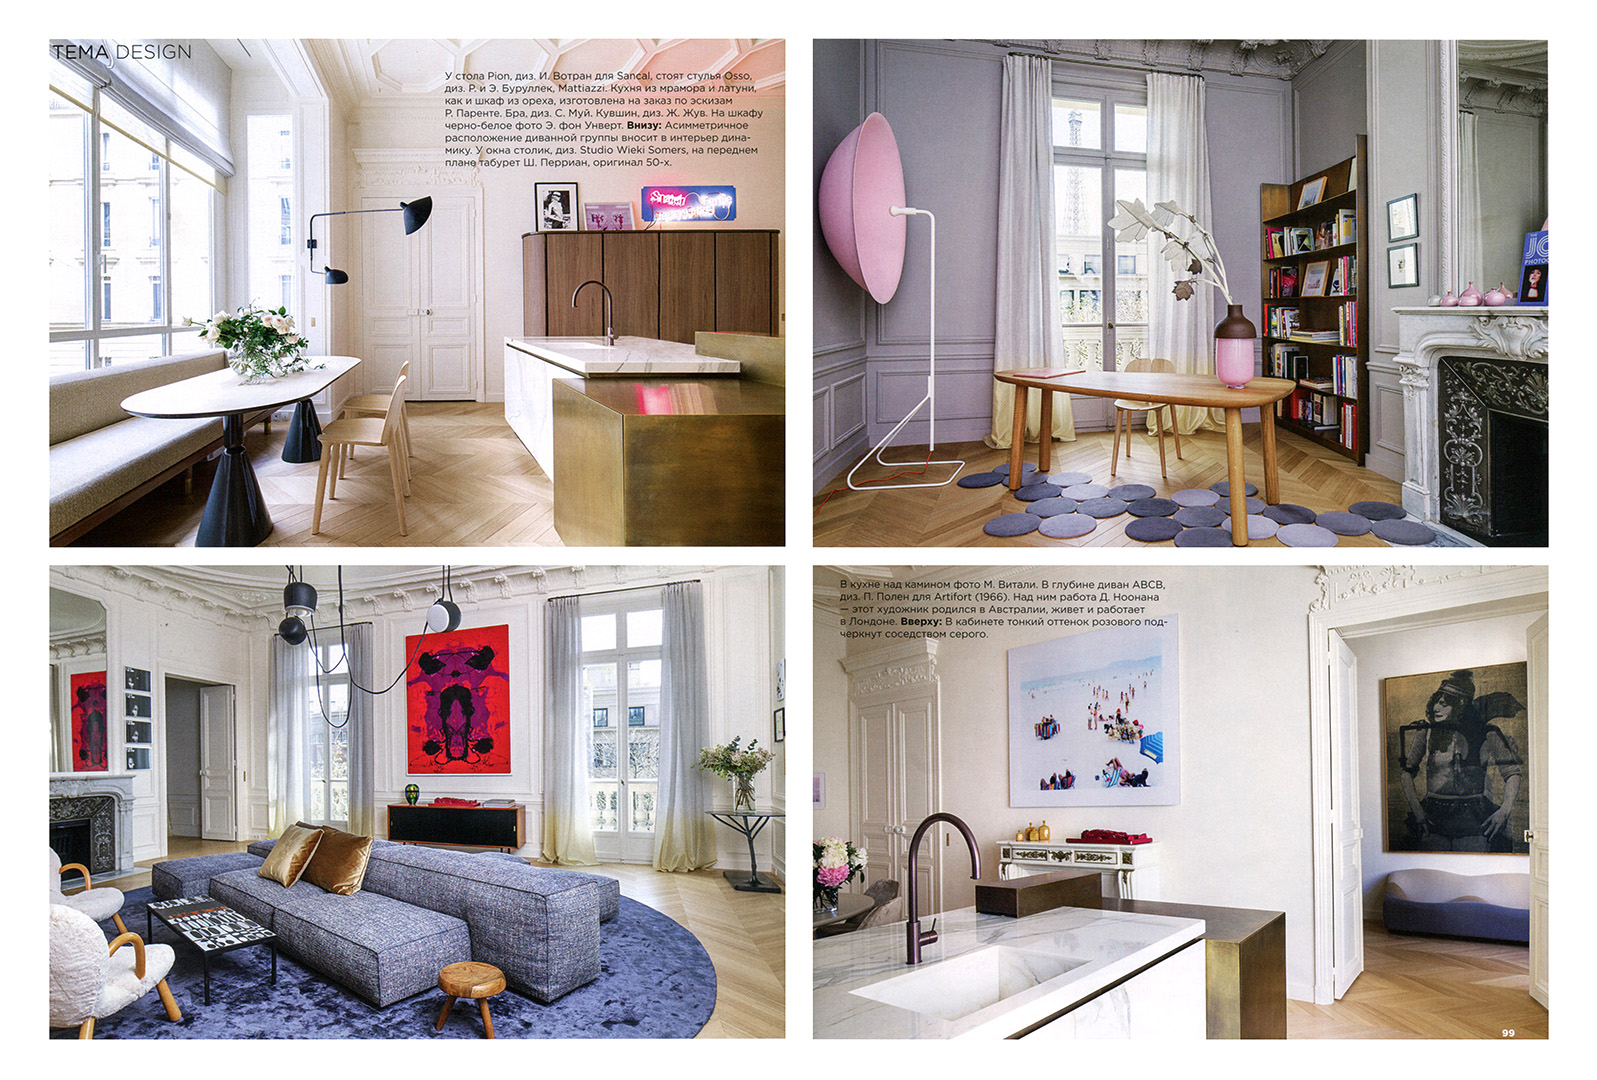 Rodolphe-Parente-Interior-Design-Magazine-2015-05